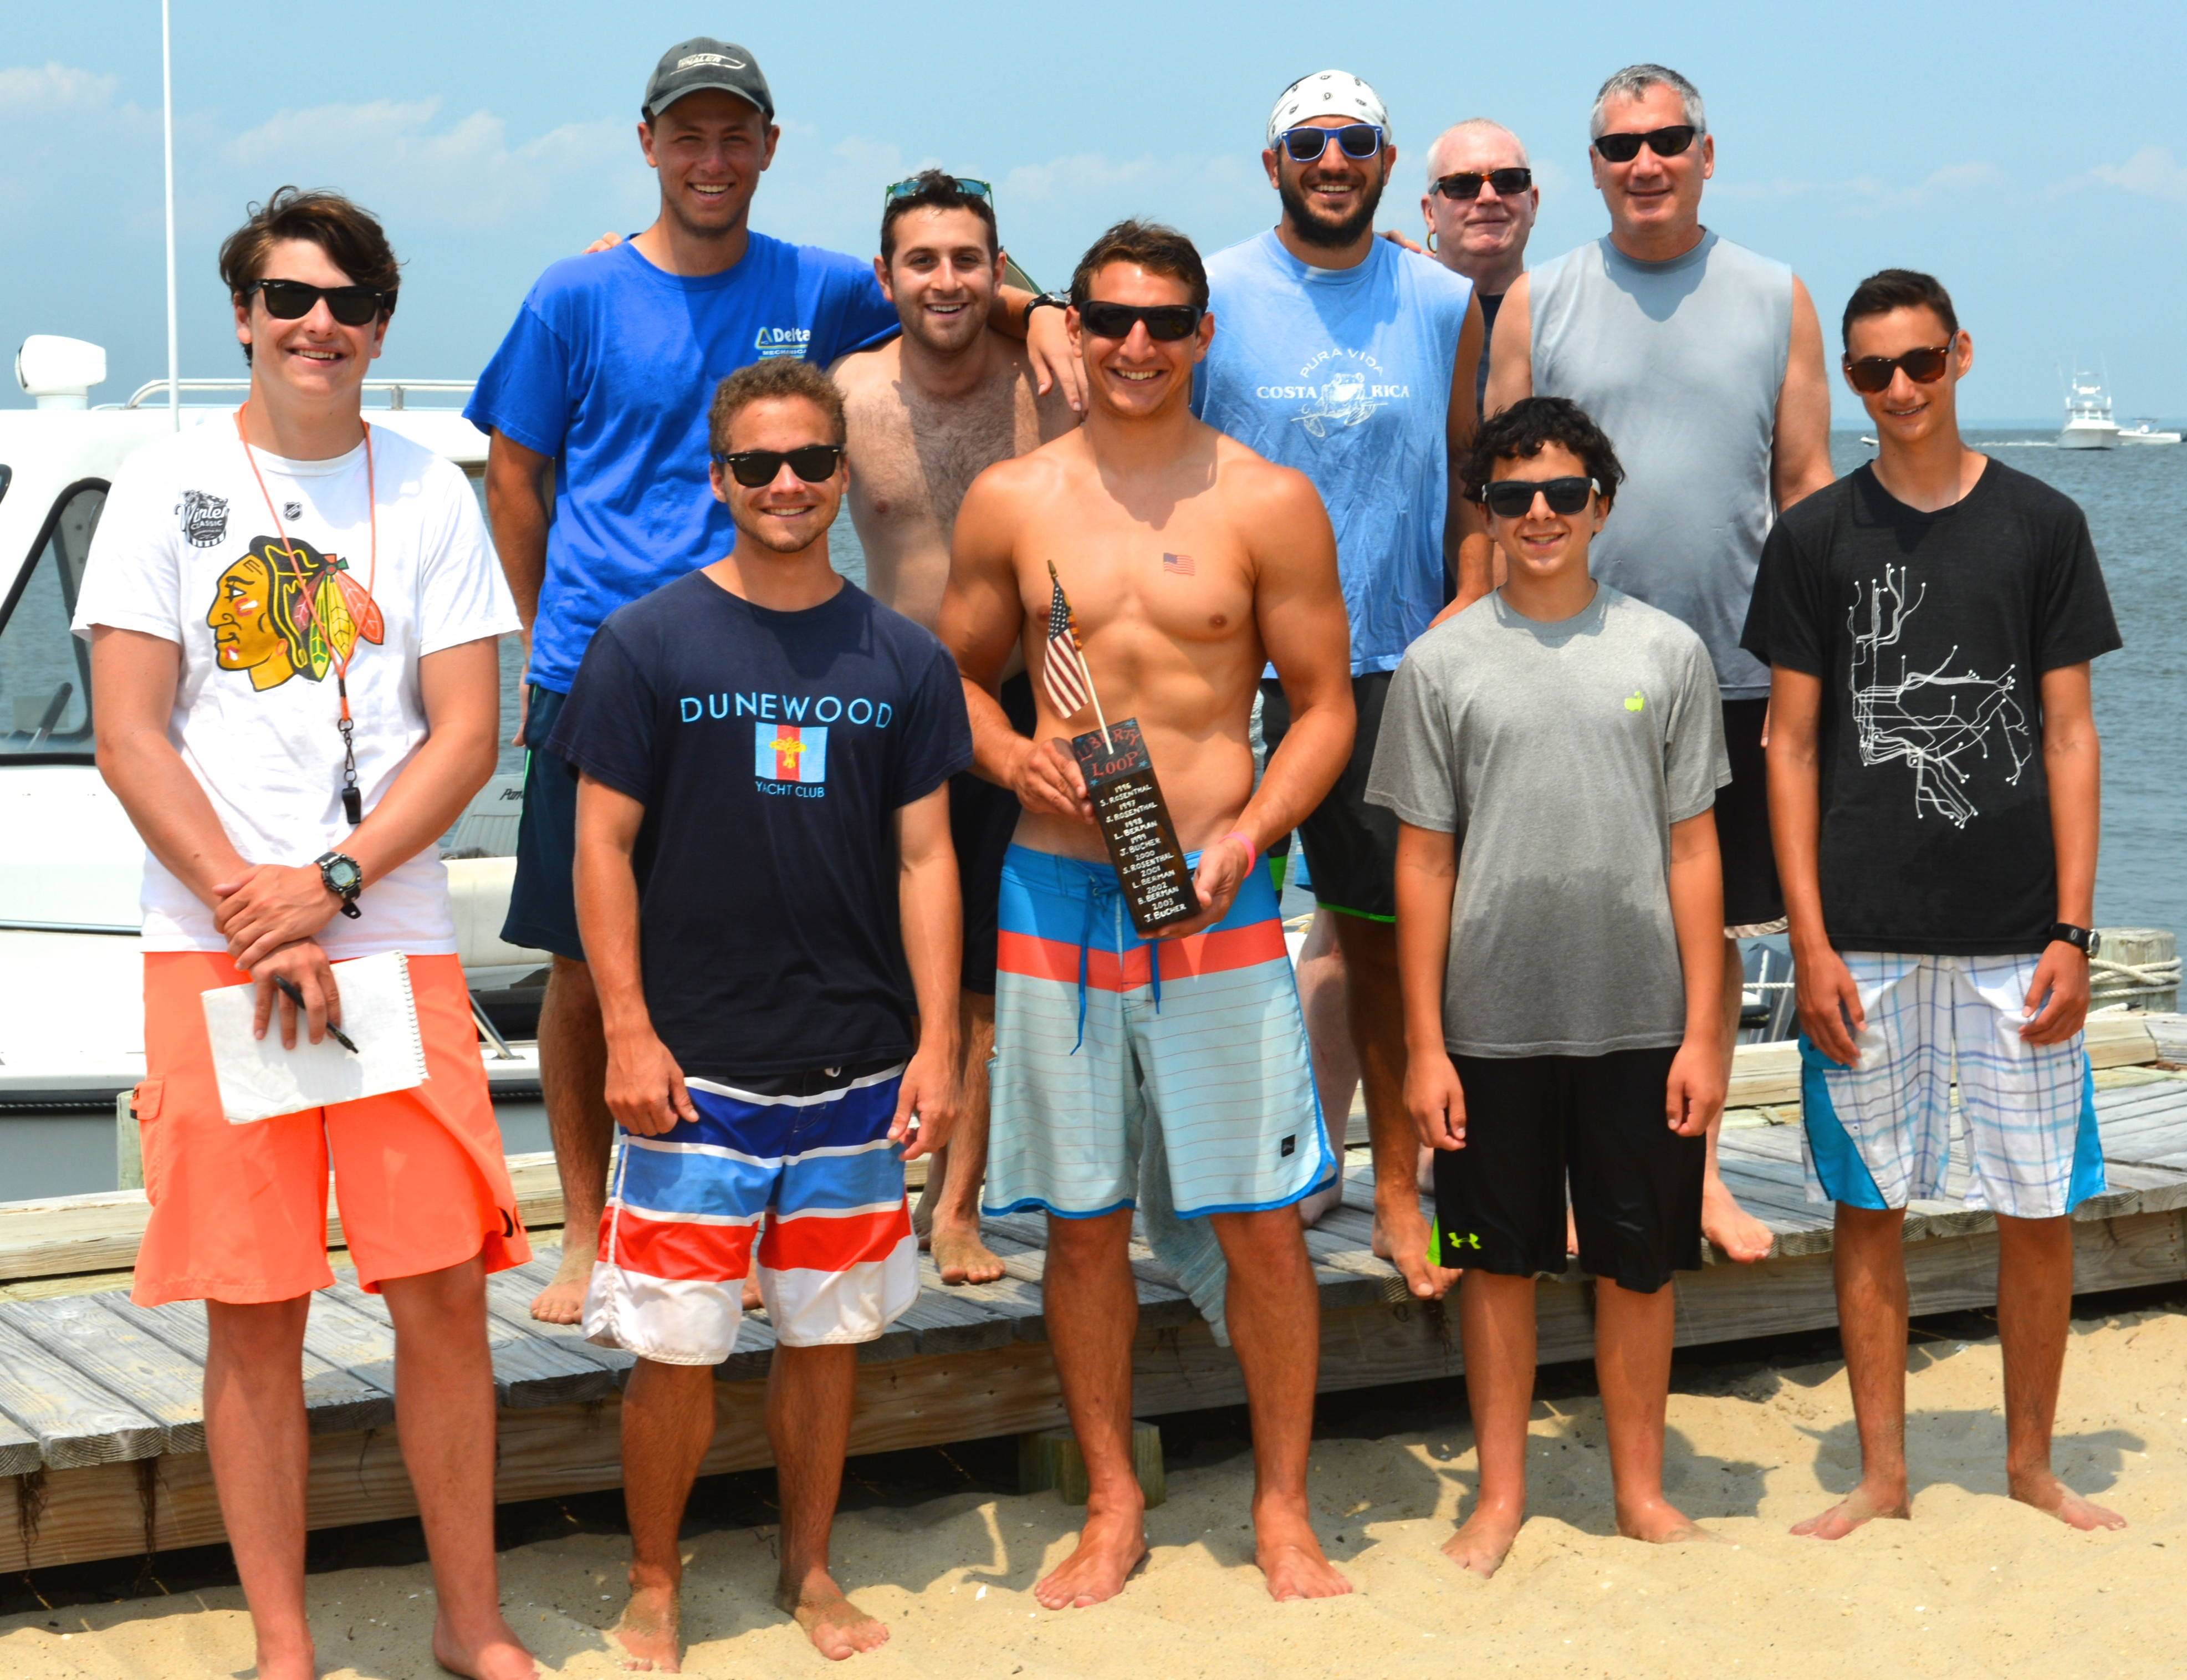 Racers from Left to Right - Top Row: Jake Singer, Oliver Roth, Rich Perna, Ernie Fritz, Matt Gilbert Front Row: Sam Bither, Emmett Weschler, Mike Perna, Jack Cutrone, Sanjay Day